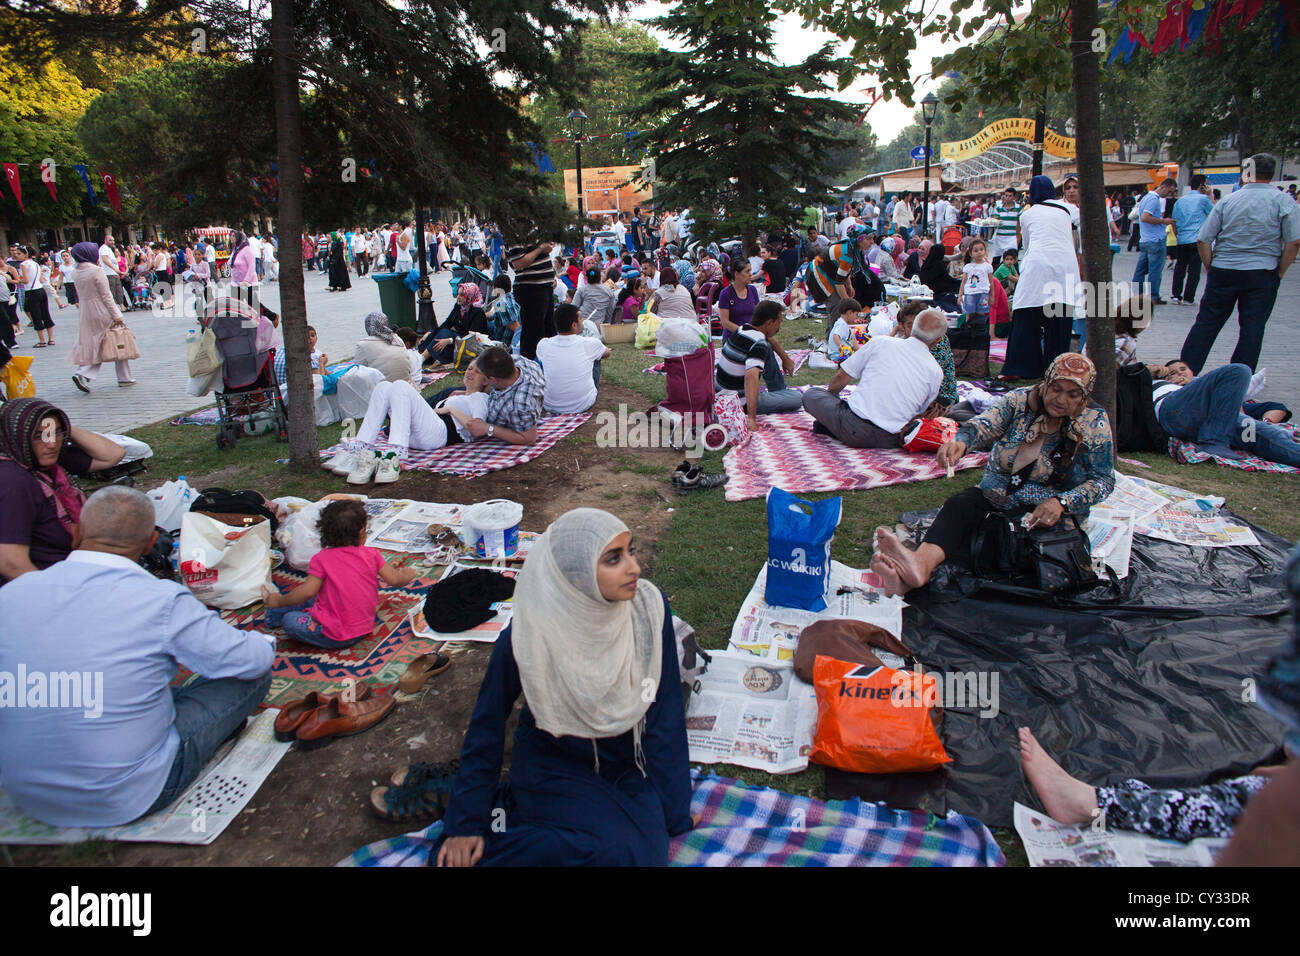 Ramadan picnic in front of the Aya Sofya, istanbul - Stock Image